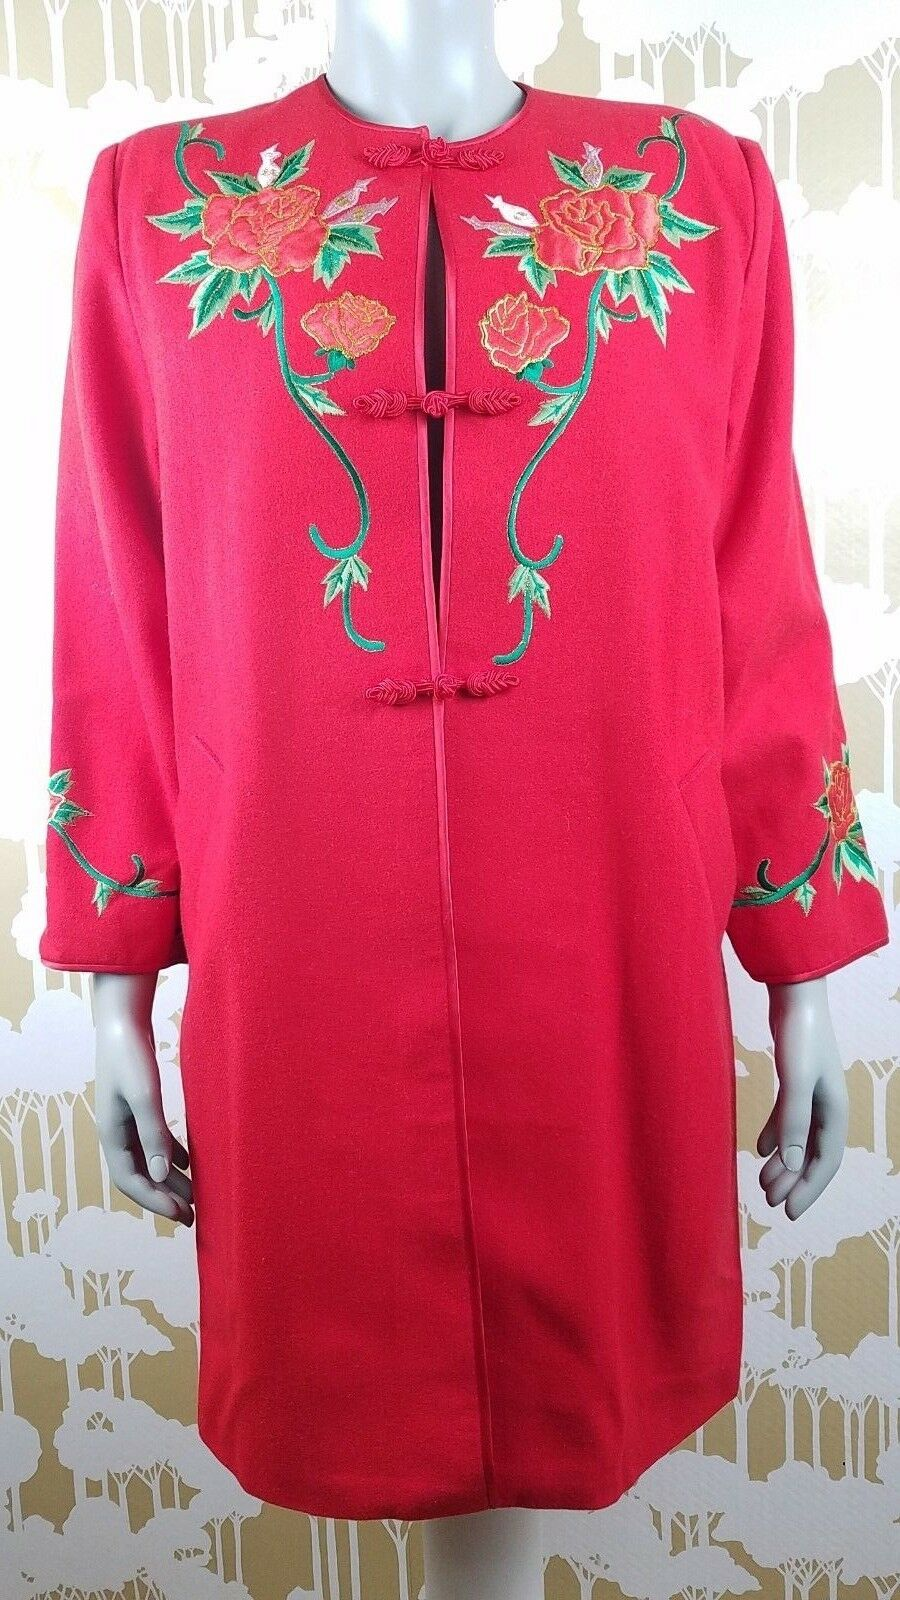 Vintage Yang Lan Women's Romantic Red pink Embroidered Long Coat Lined Career